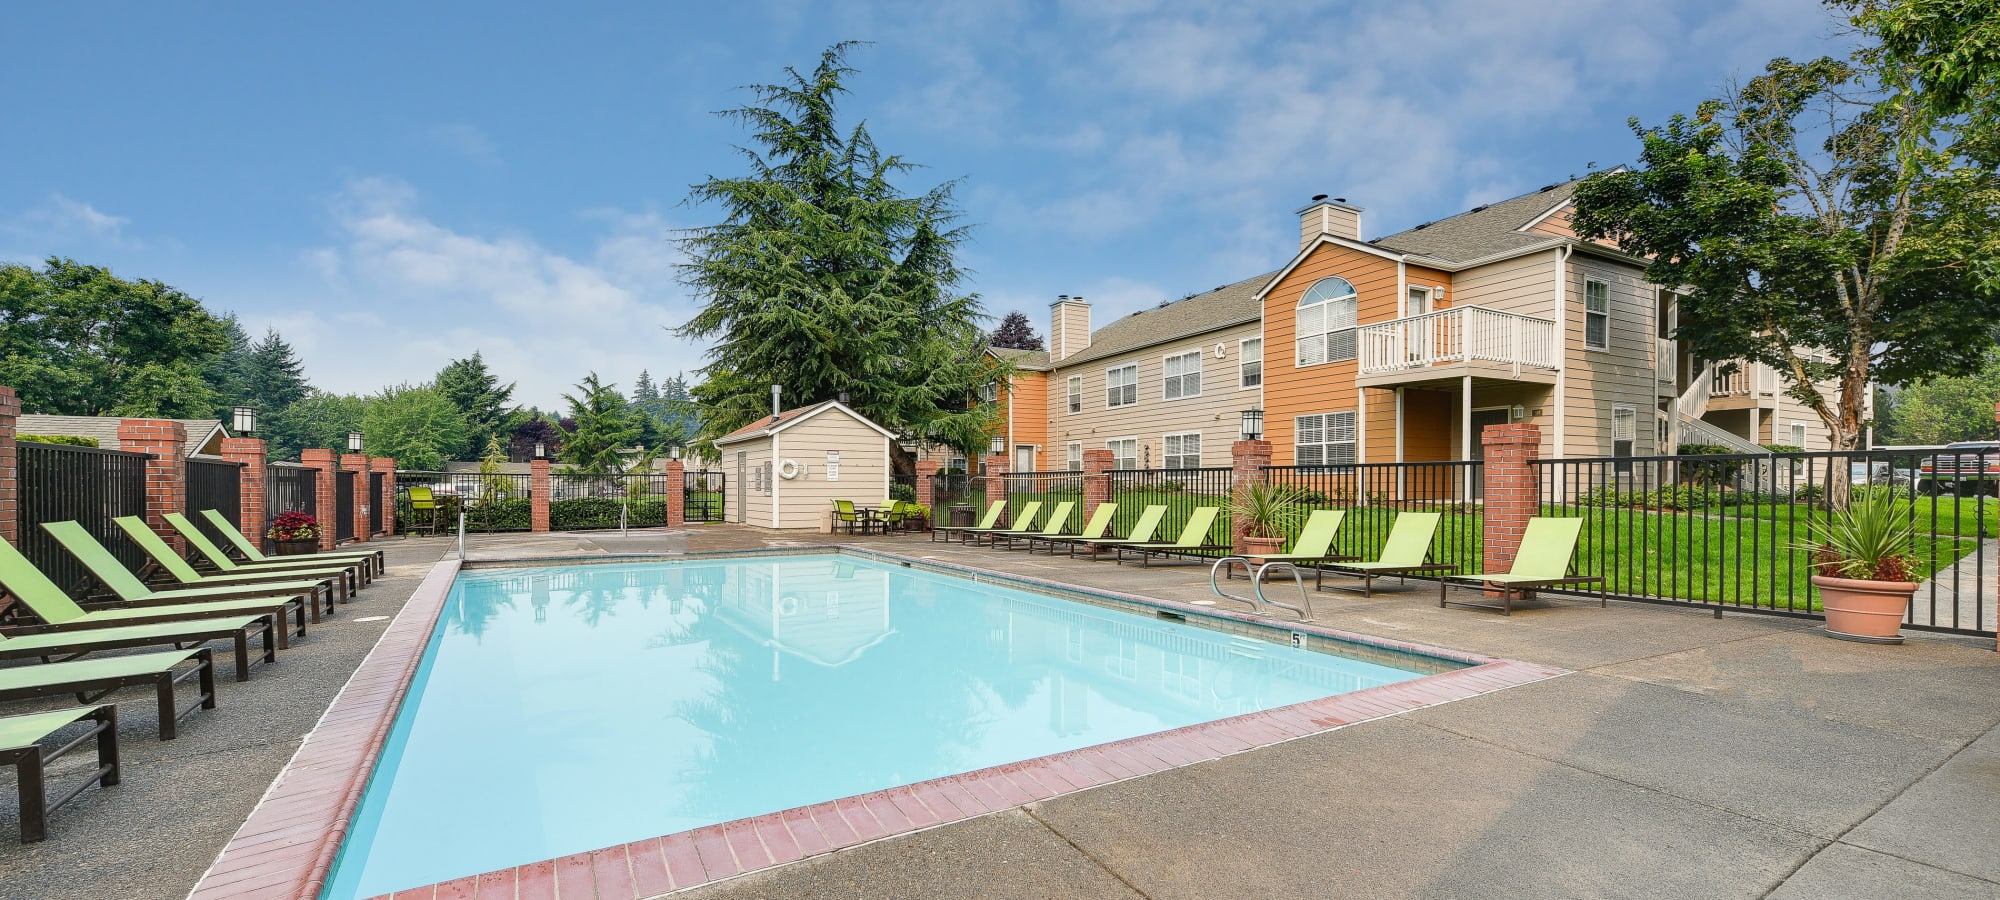 Carriage Park Apartments in Vancouver, Washington